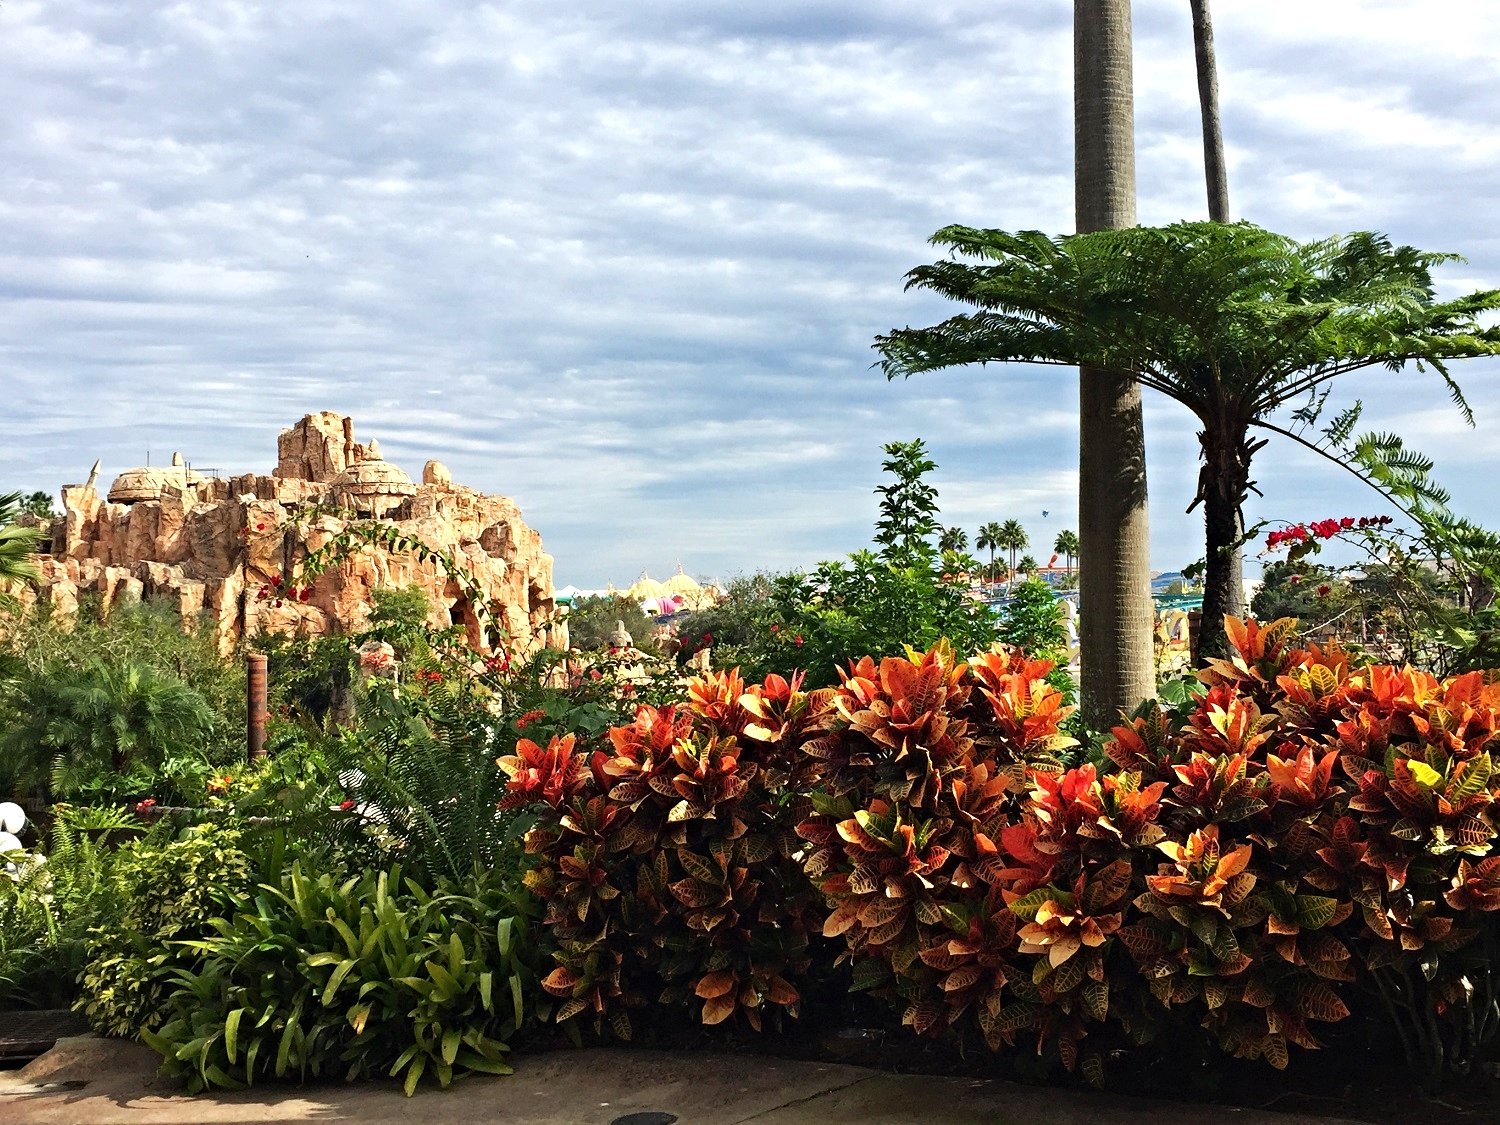 view-from-behind-jurassic-park-discovery-center.jpg